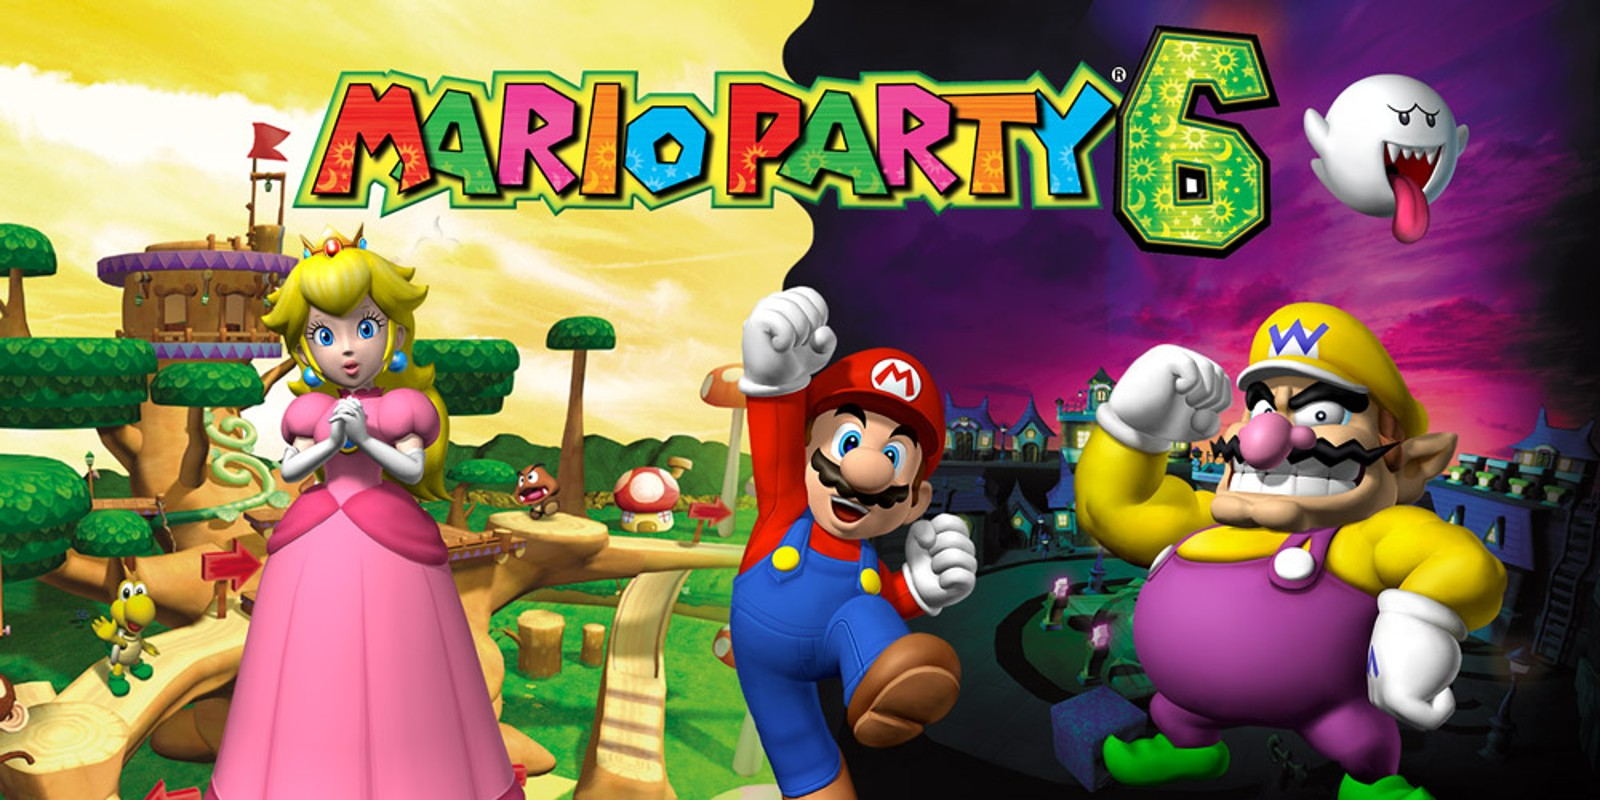 gamecube mario party 6